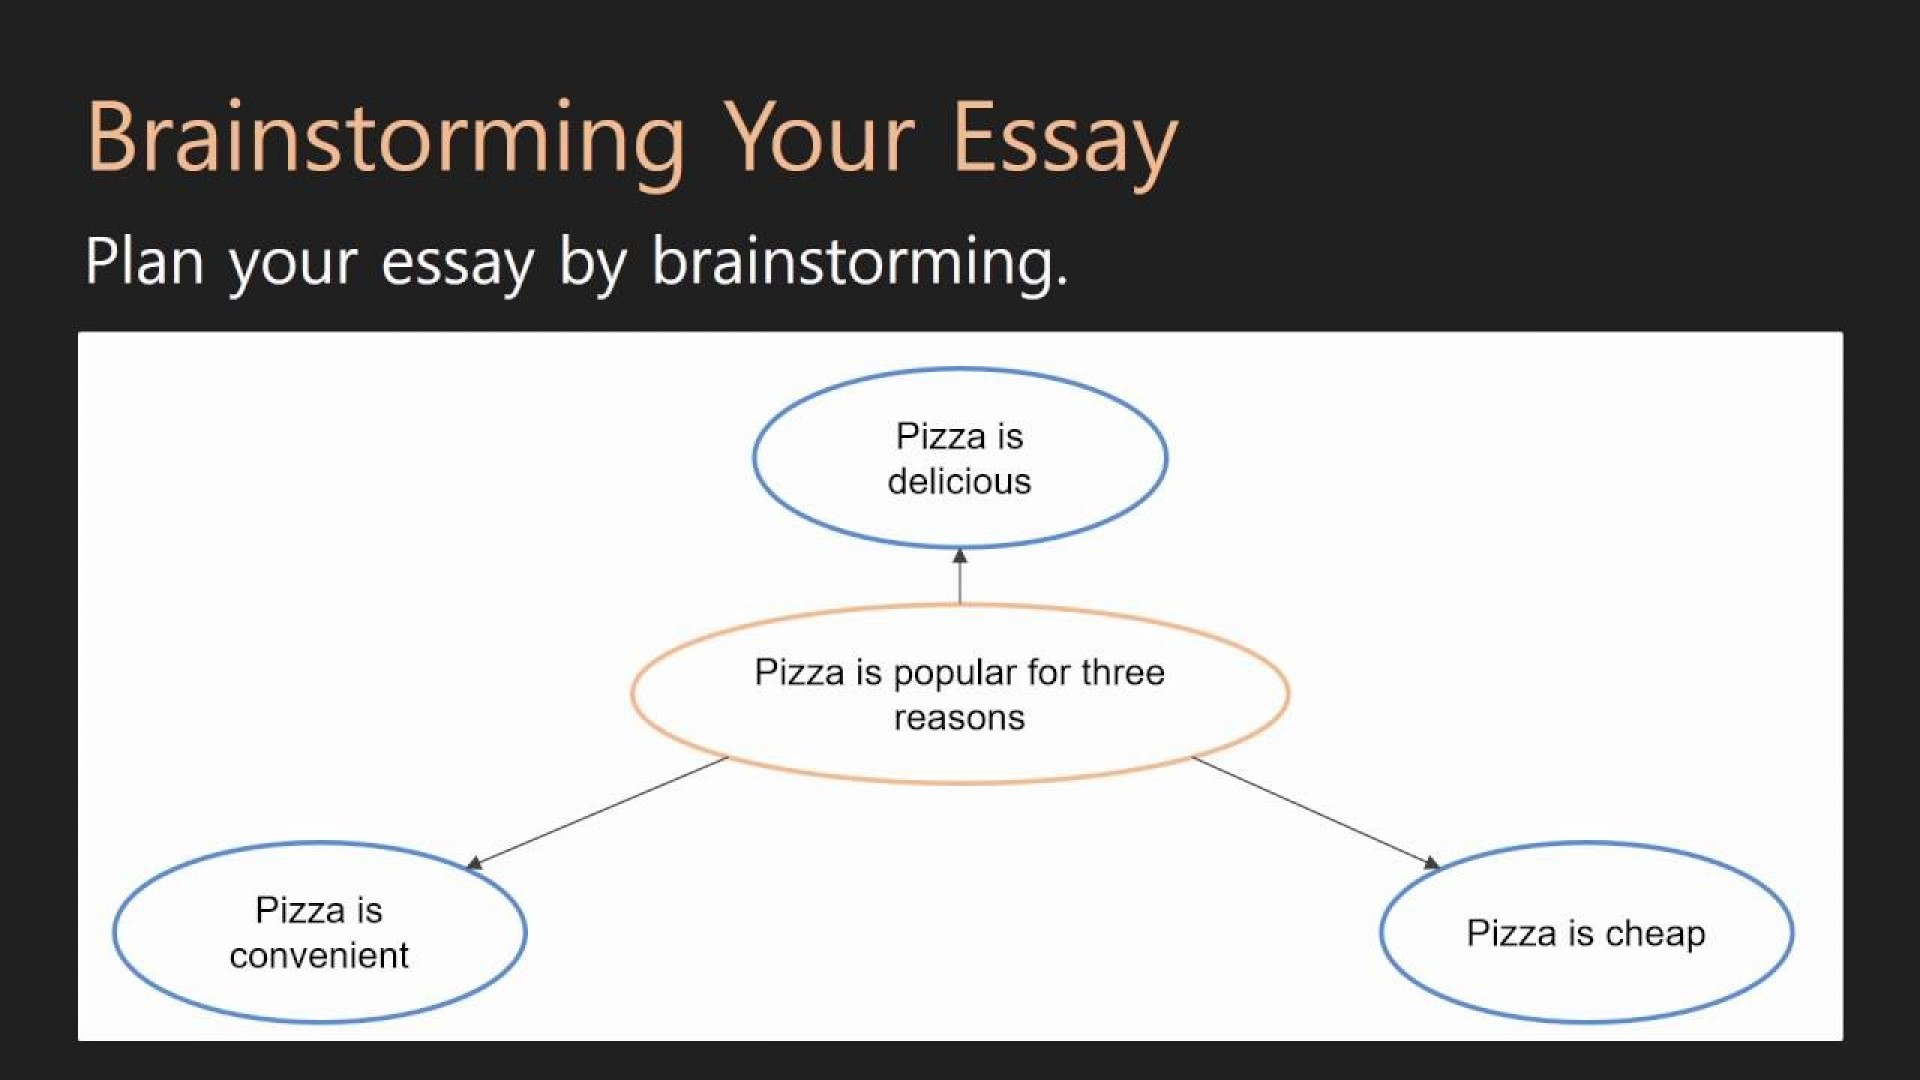 001 Essay Brainstorming Maxresdefault Outstanding Writing Techniques Topics College 1920